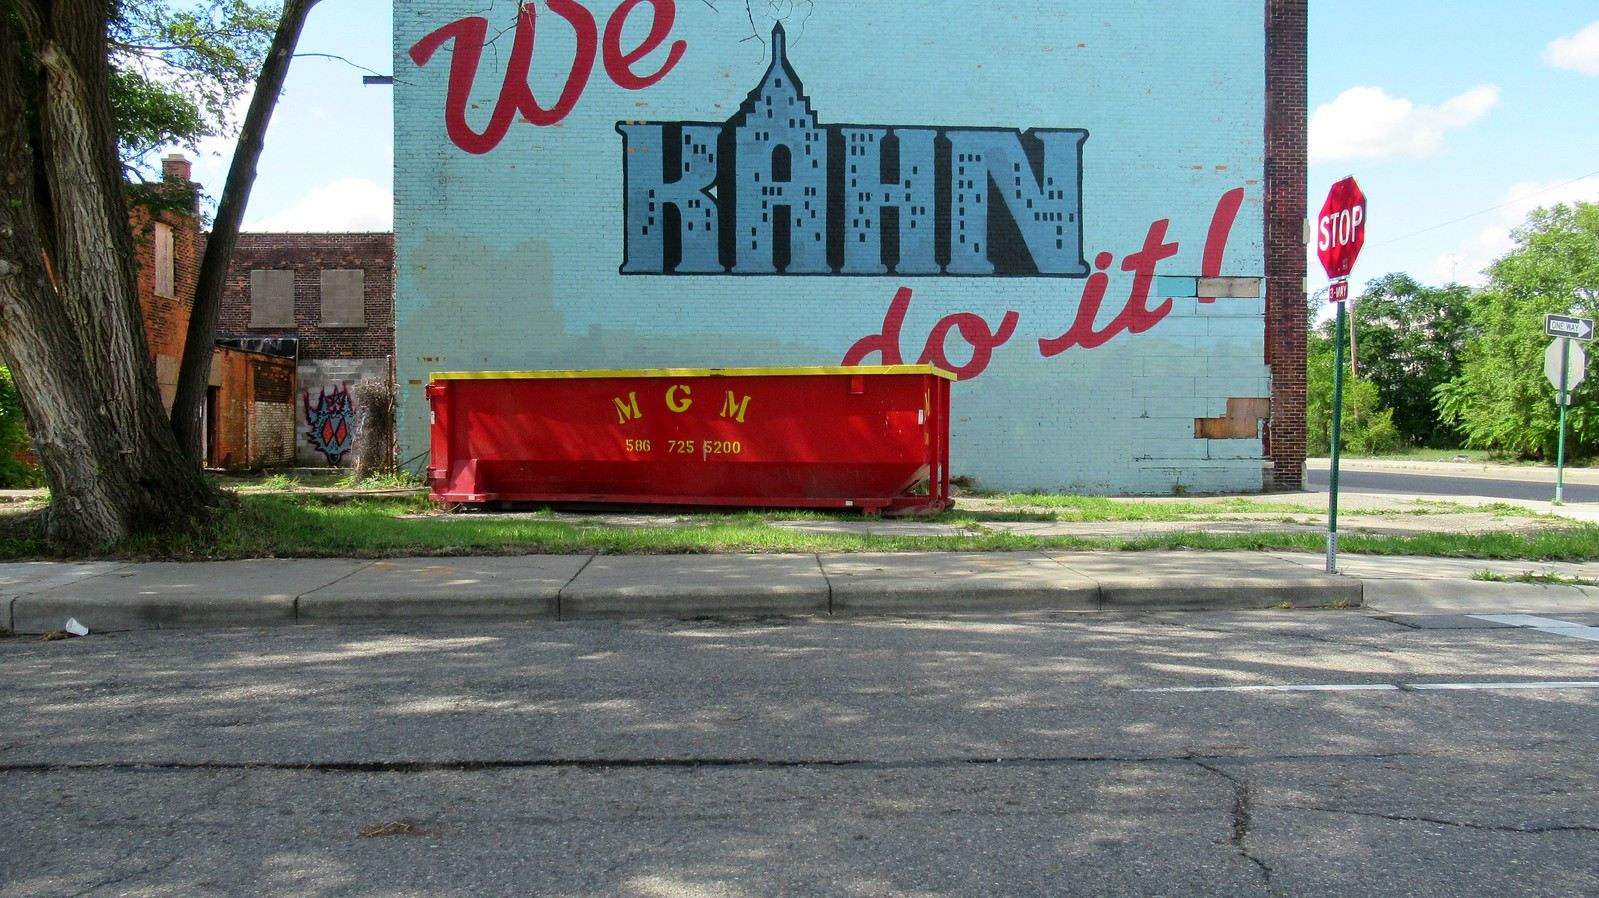 We Kahn Do It | by Robert Saucier